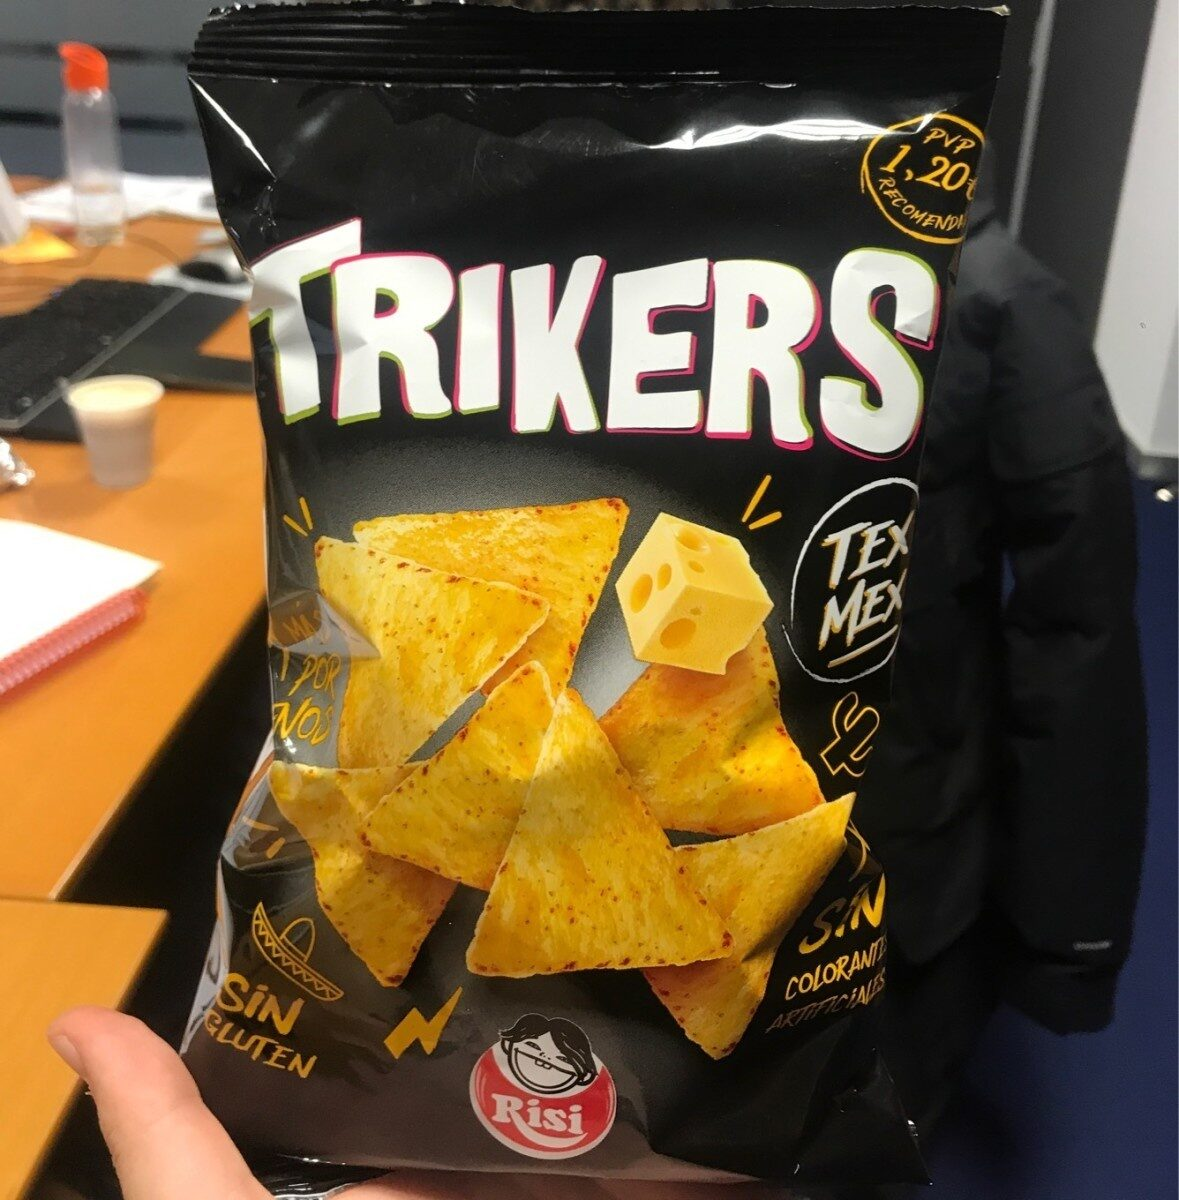 Trikers - Product